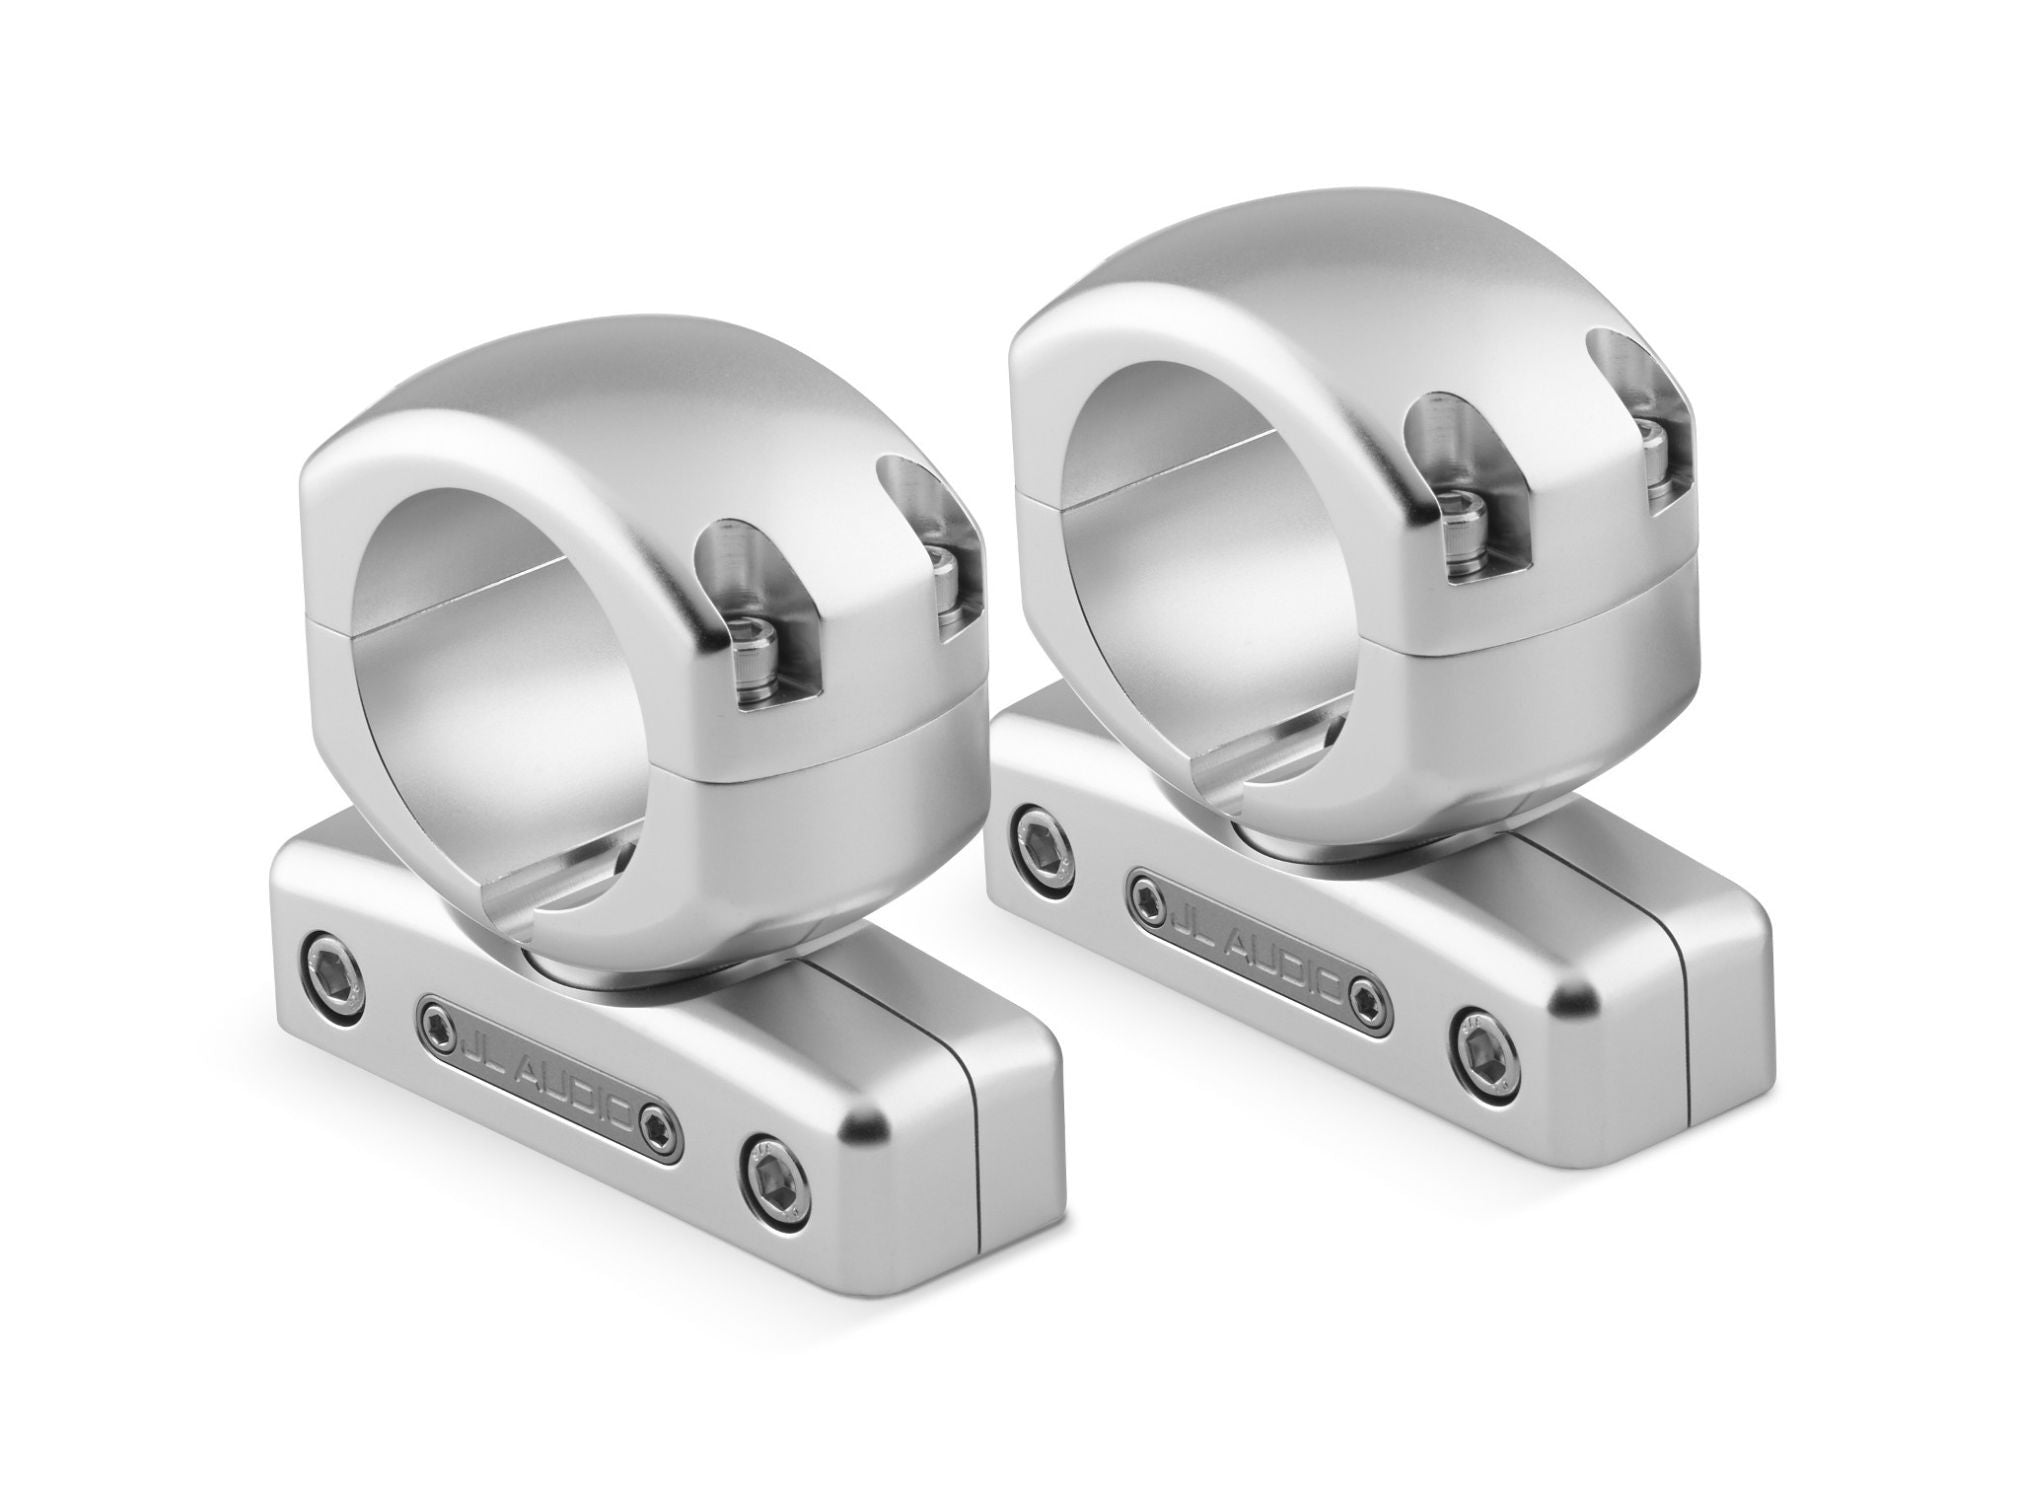 M-SWMCPv3-2-250 Swivel Mounting Clamp Pair